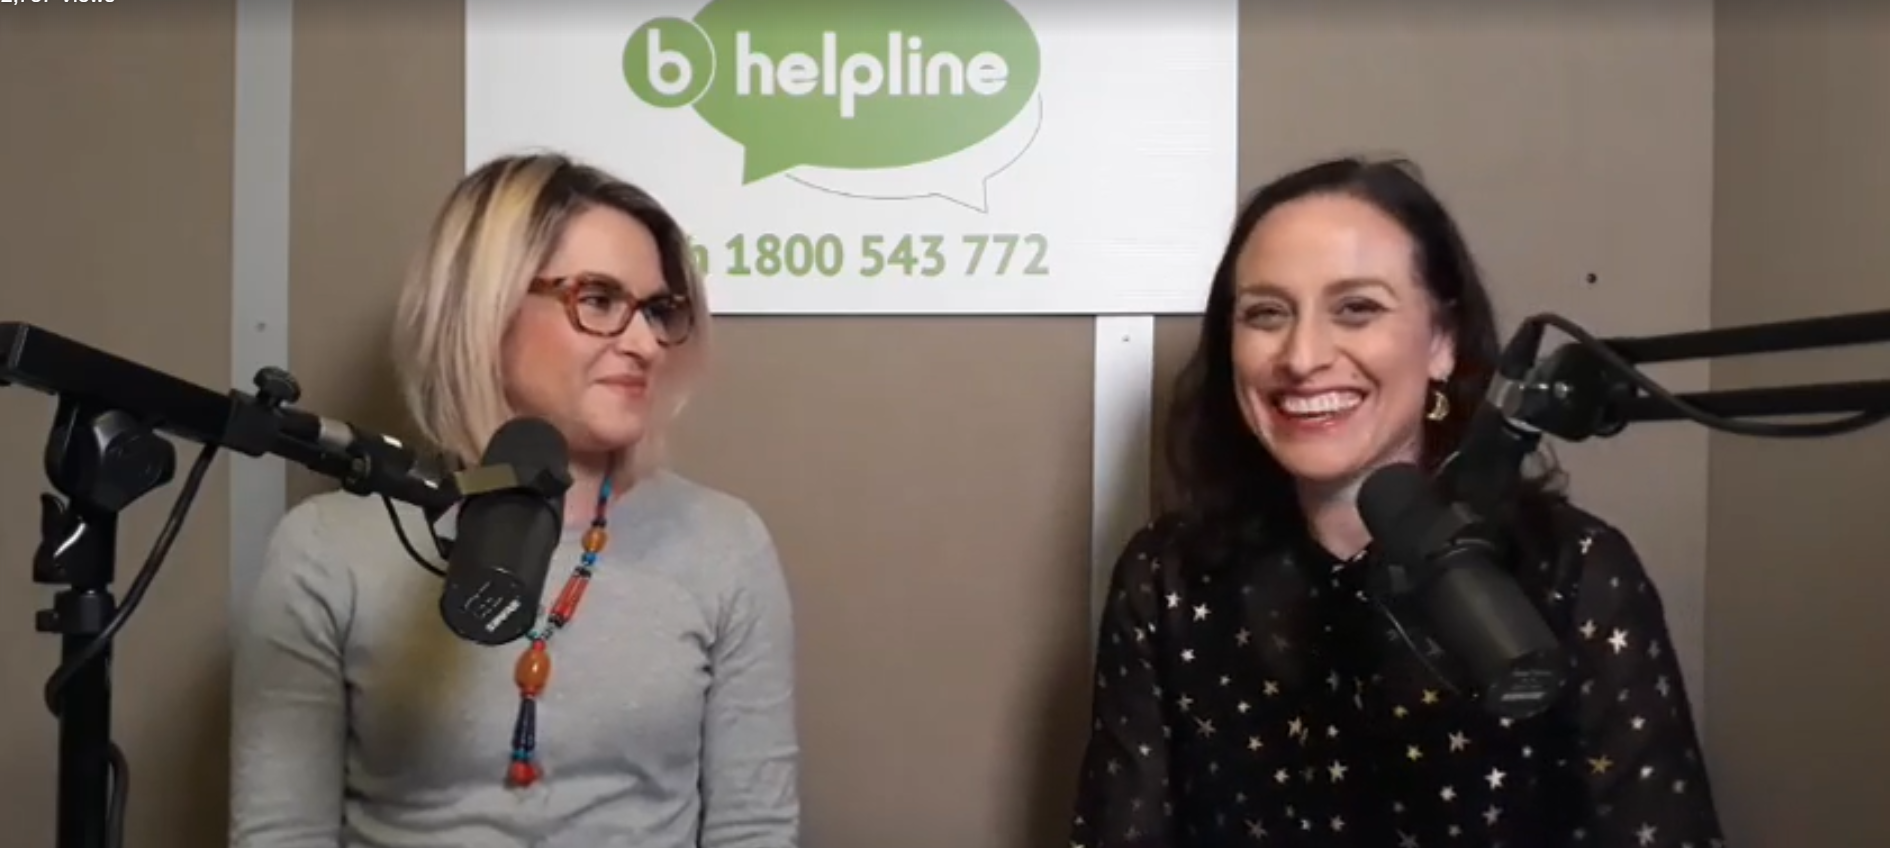 Kirsty and Shevonne talk all things relationships on Feed Play Love Relationships Helpline